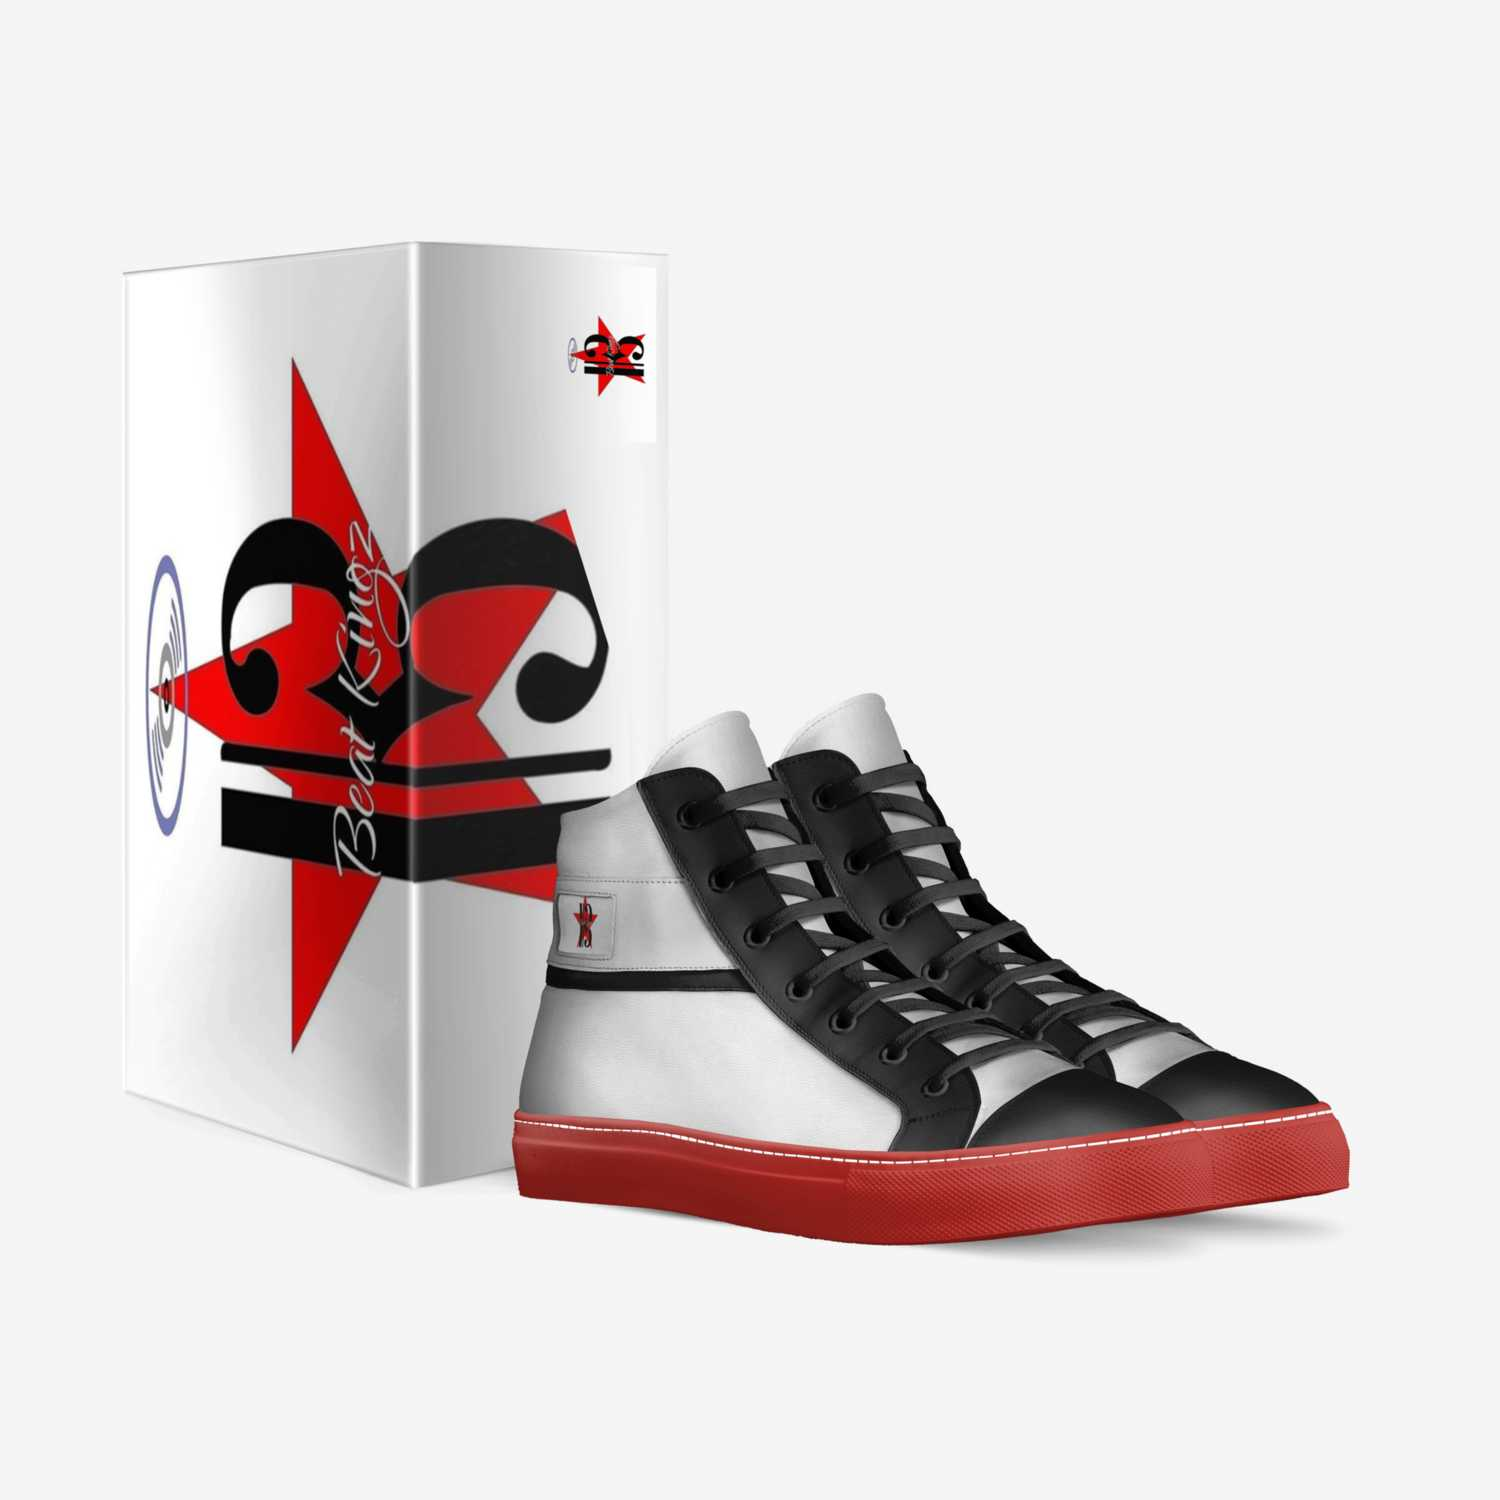 Beatkingz custom made in Italy shoes by Carlos Scott | Box view